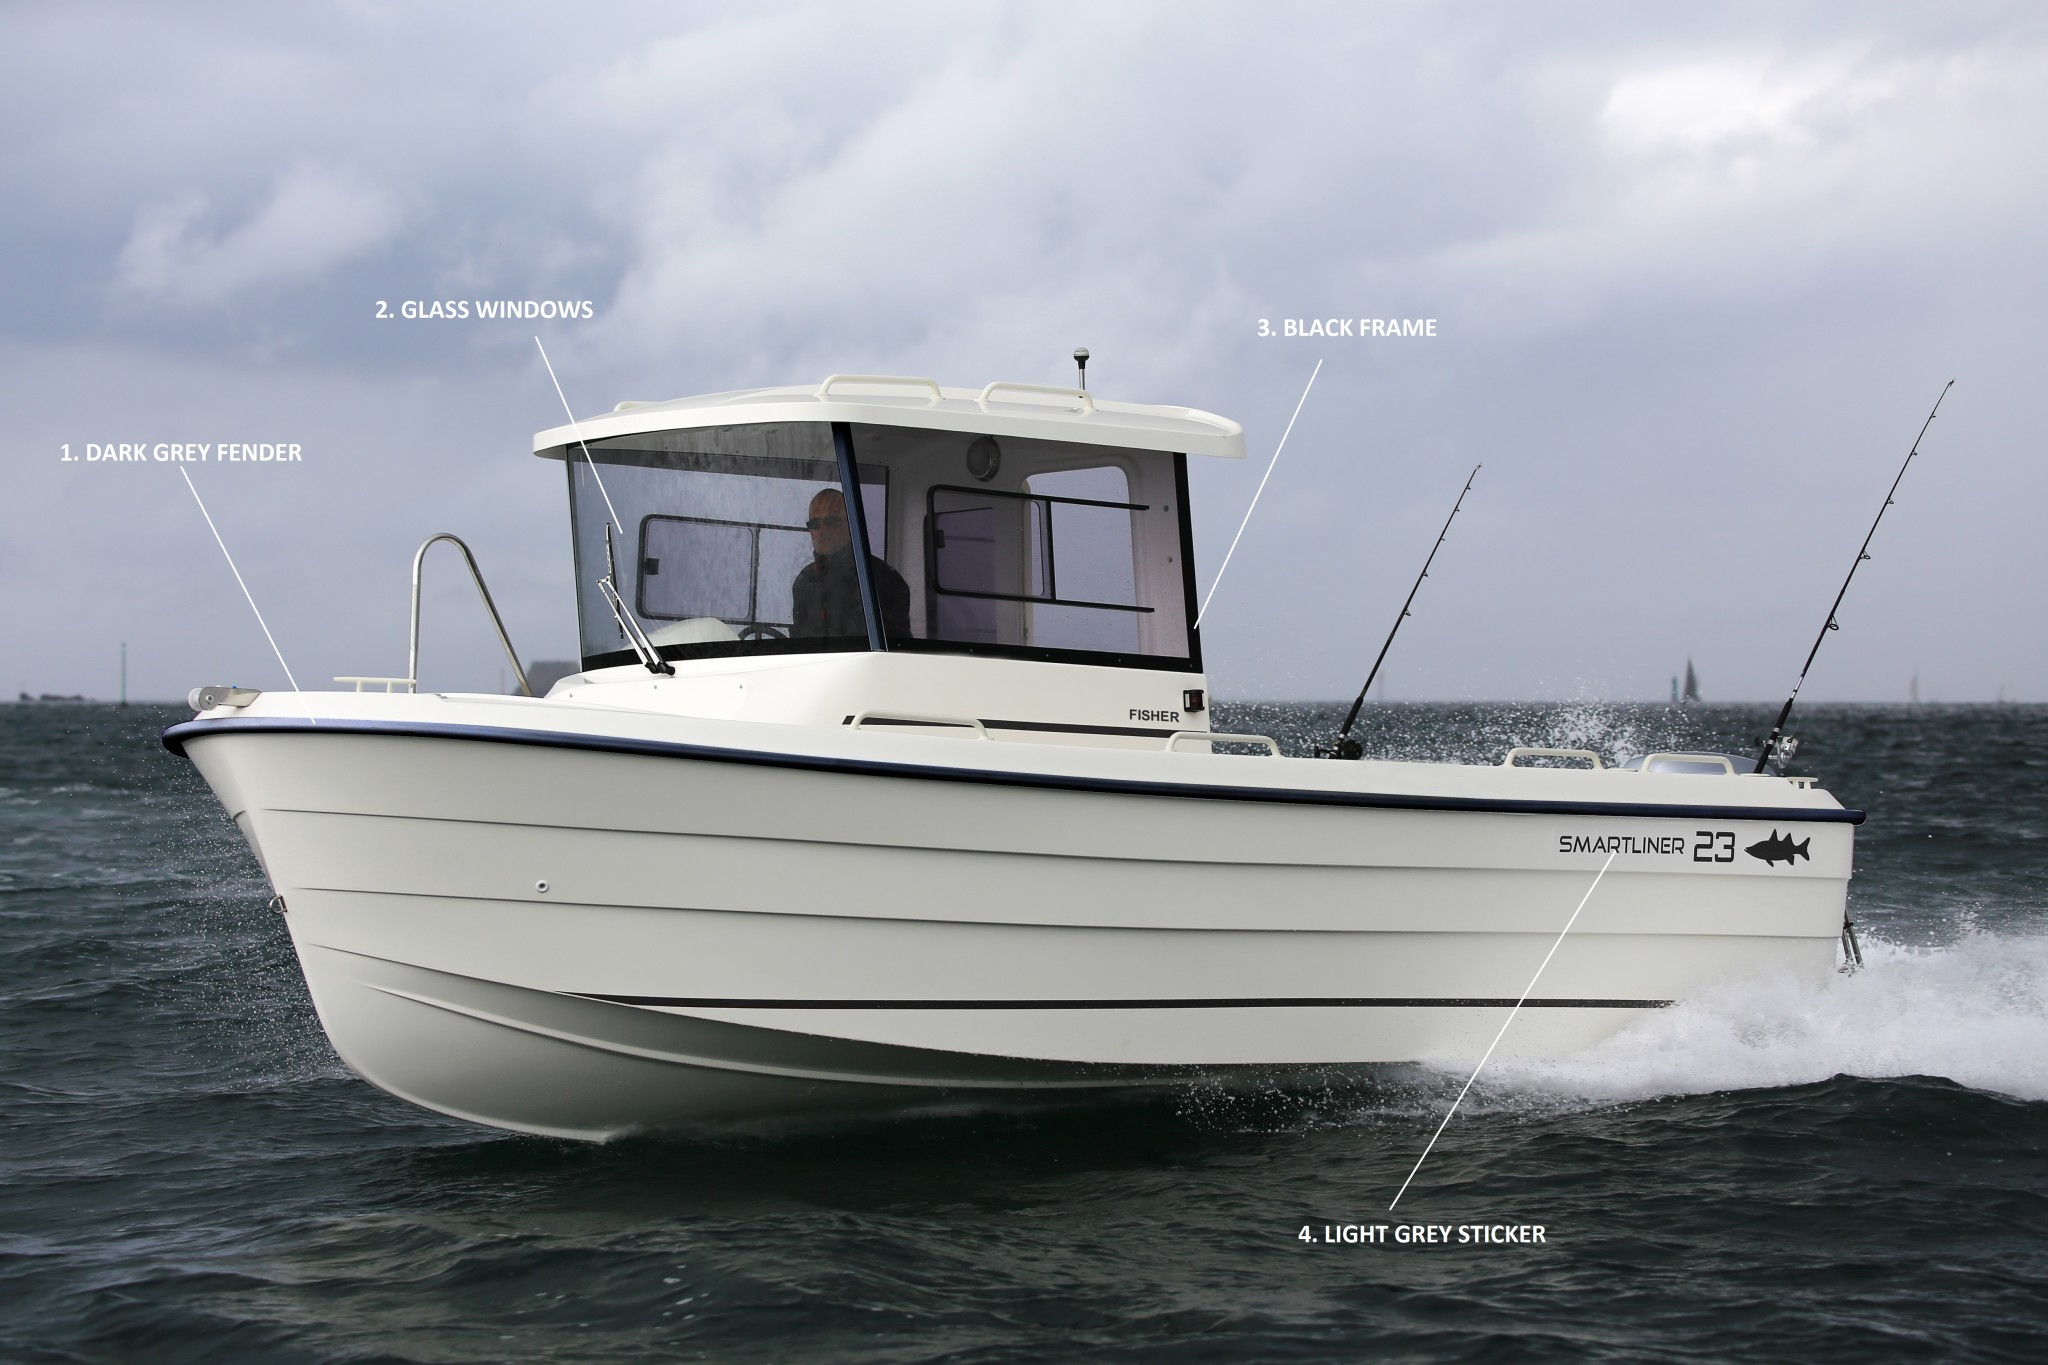 Smartliner, designer and builder of fiberglass et aluminium boats